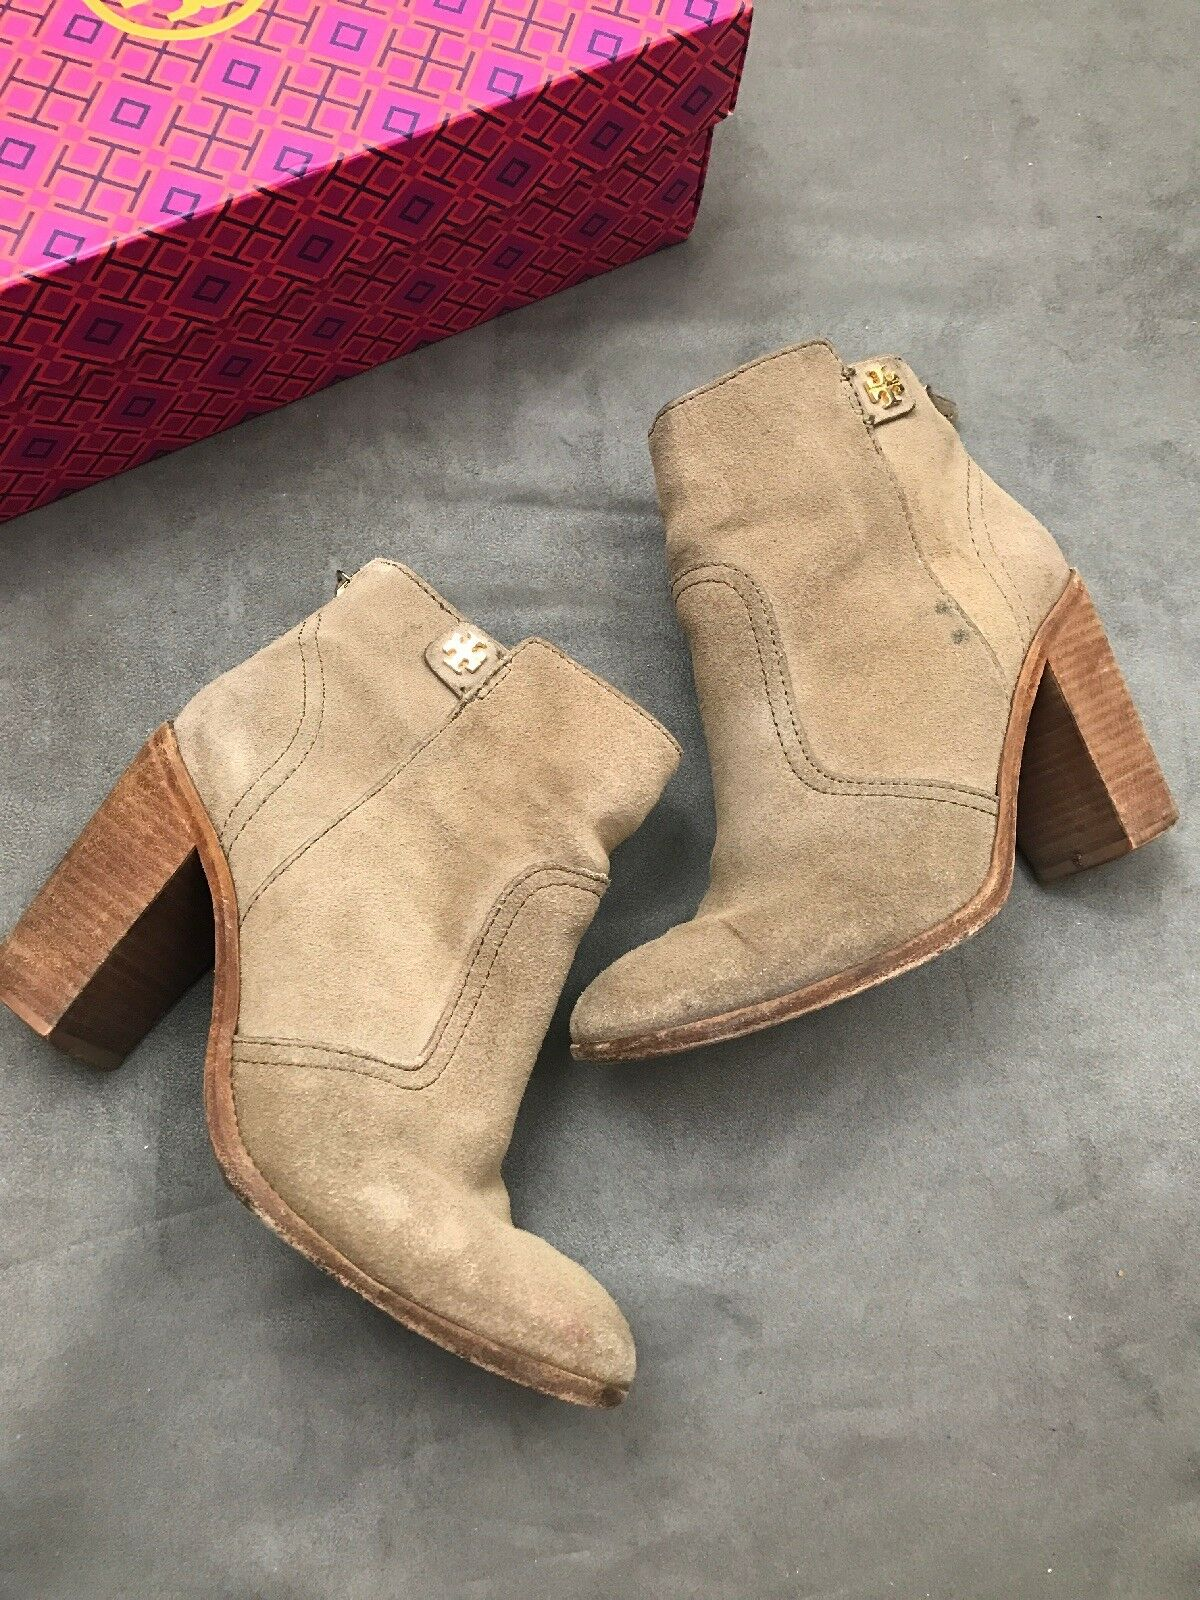 TORY BURCH Leena Ankle Bootie Briarwood Taupe Tan 6.5 Suede Sabe Fulton Sz 6.5 Tan #B 3795d6